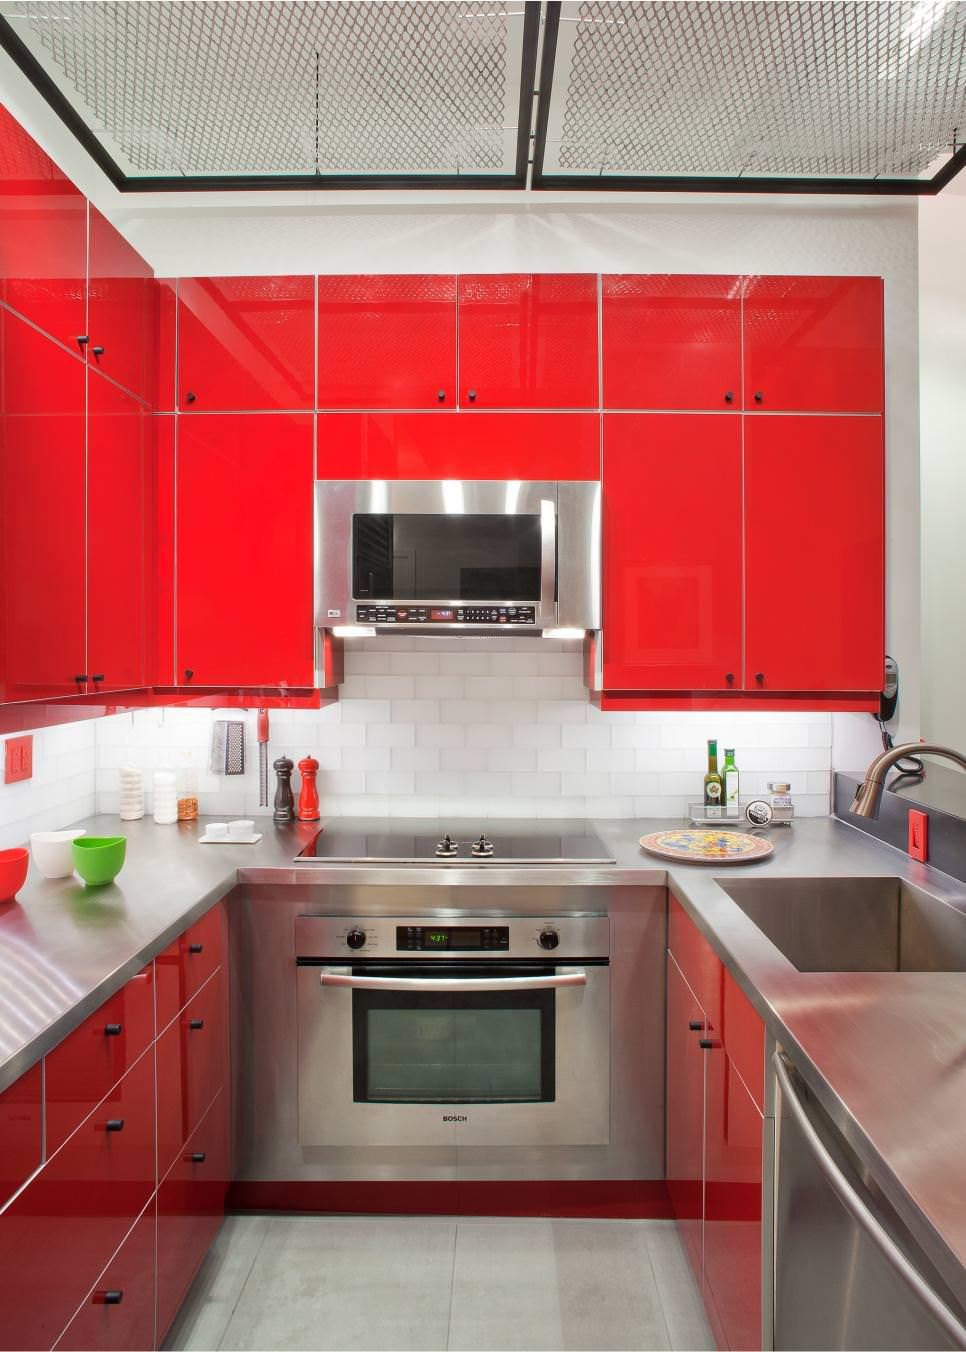 classy-red-kitchen-cabinets